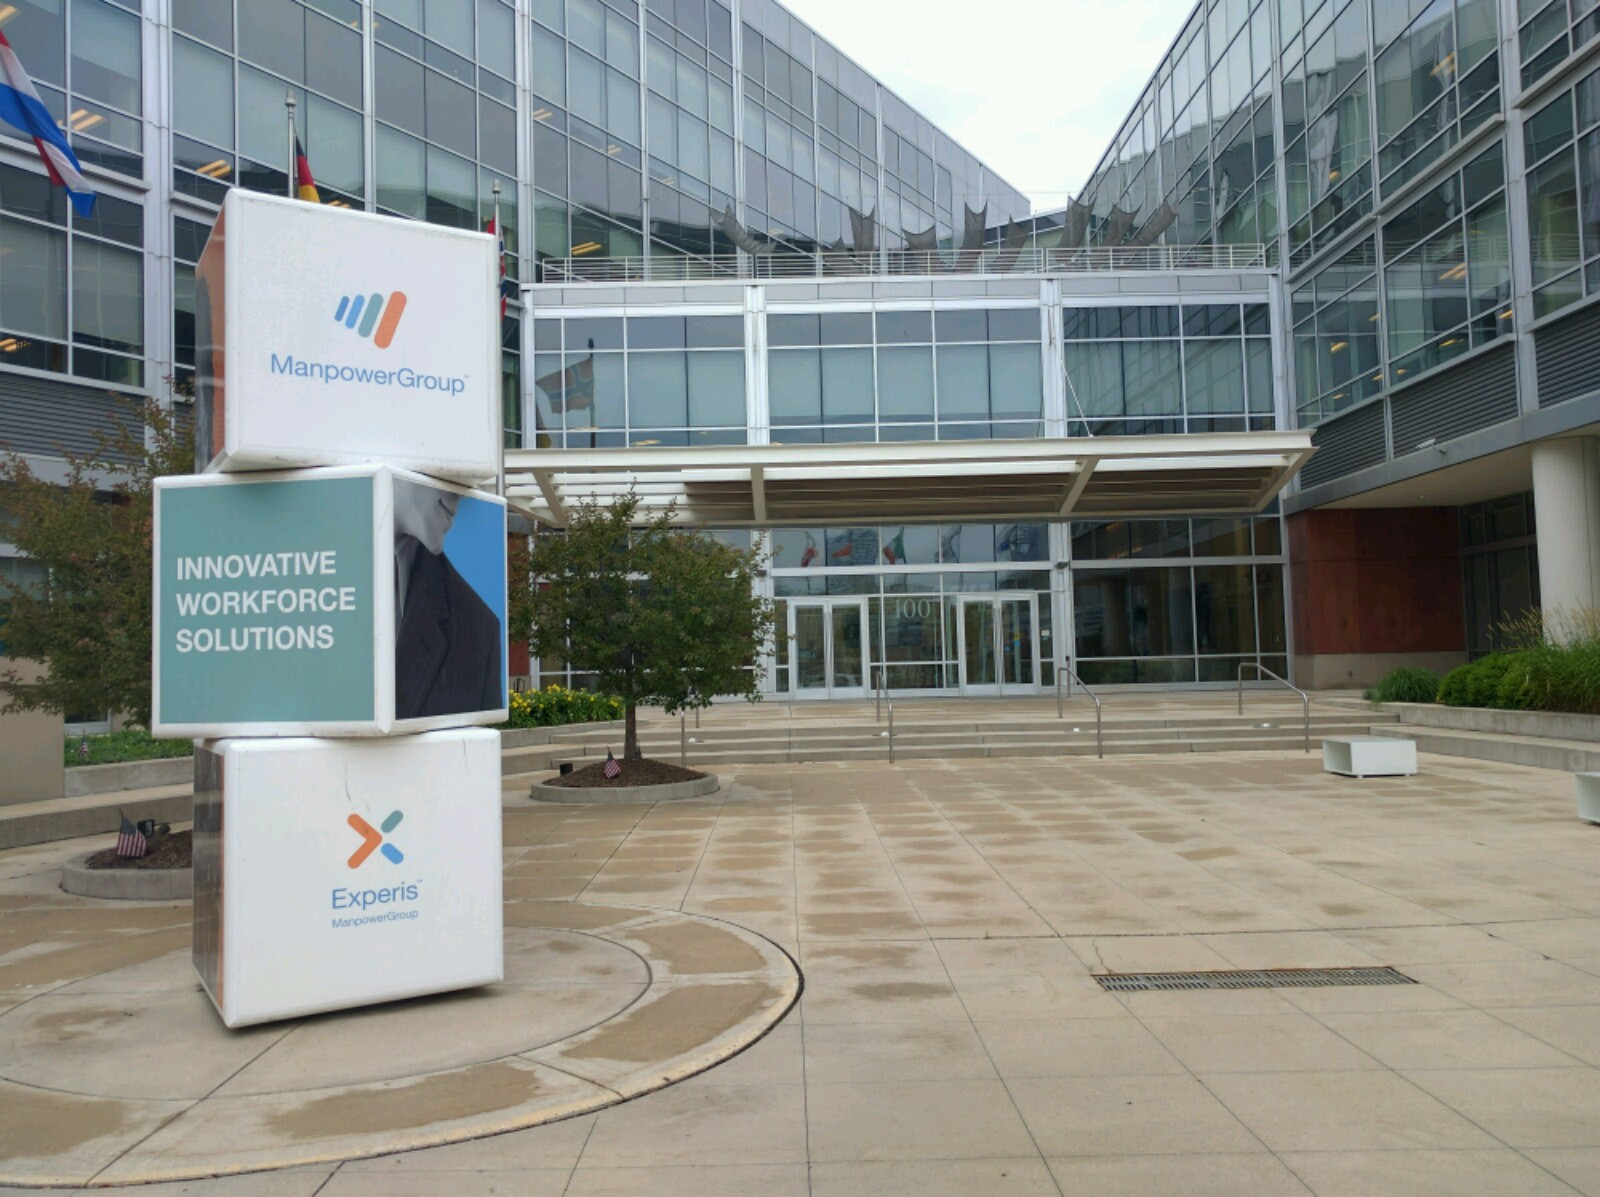 Entrance to ManpowerGroup's corporate headquarters in Milwaukee, Wisconsin.